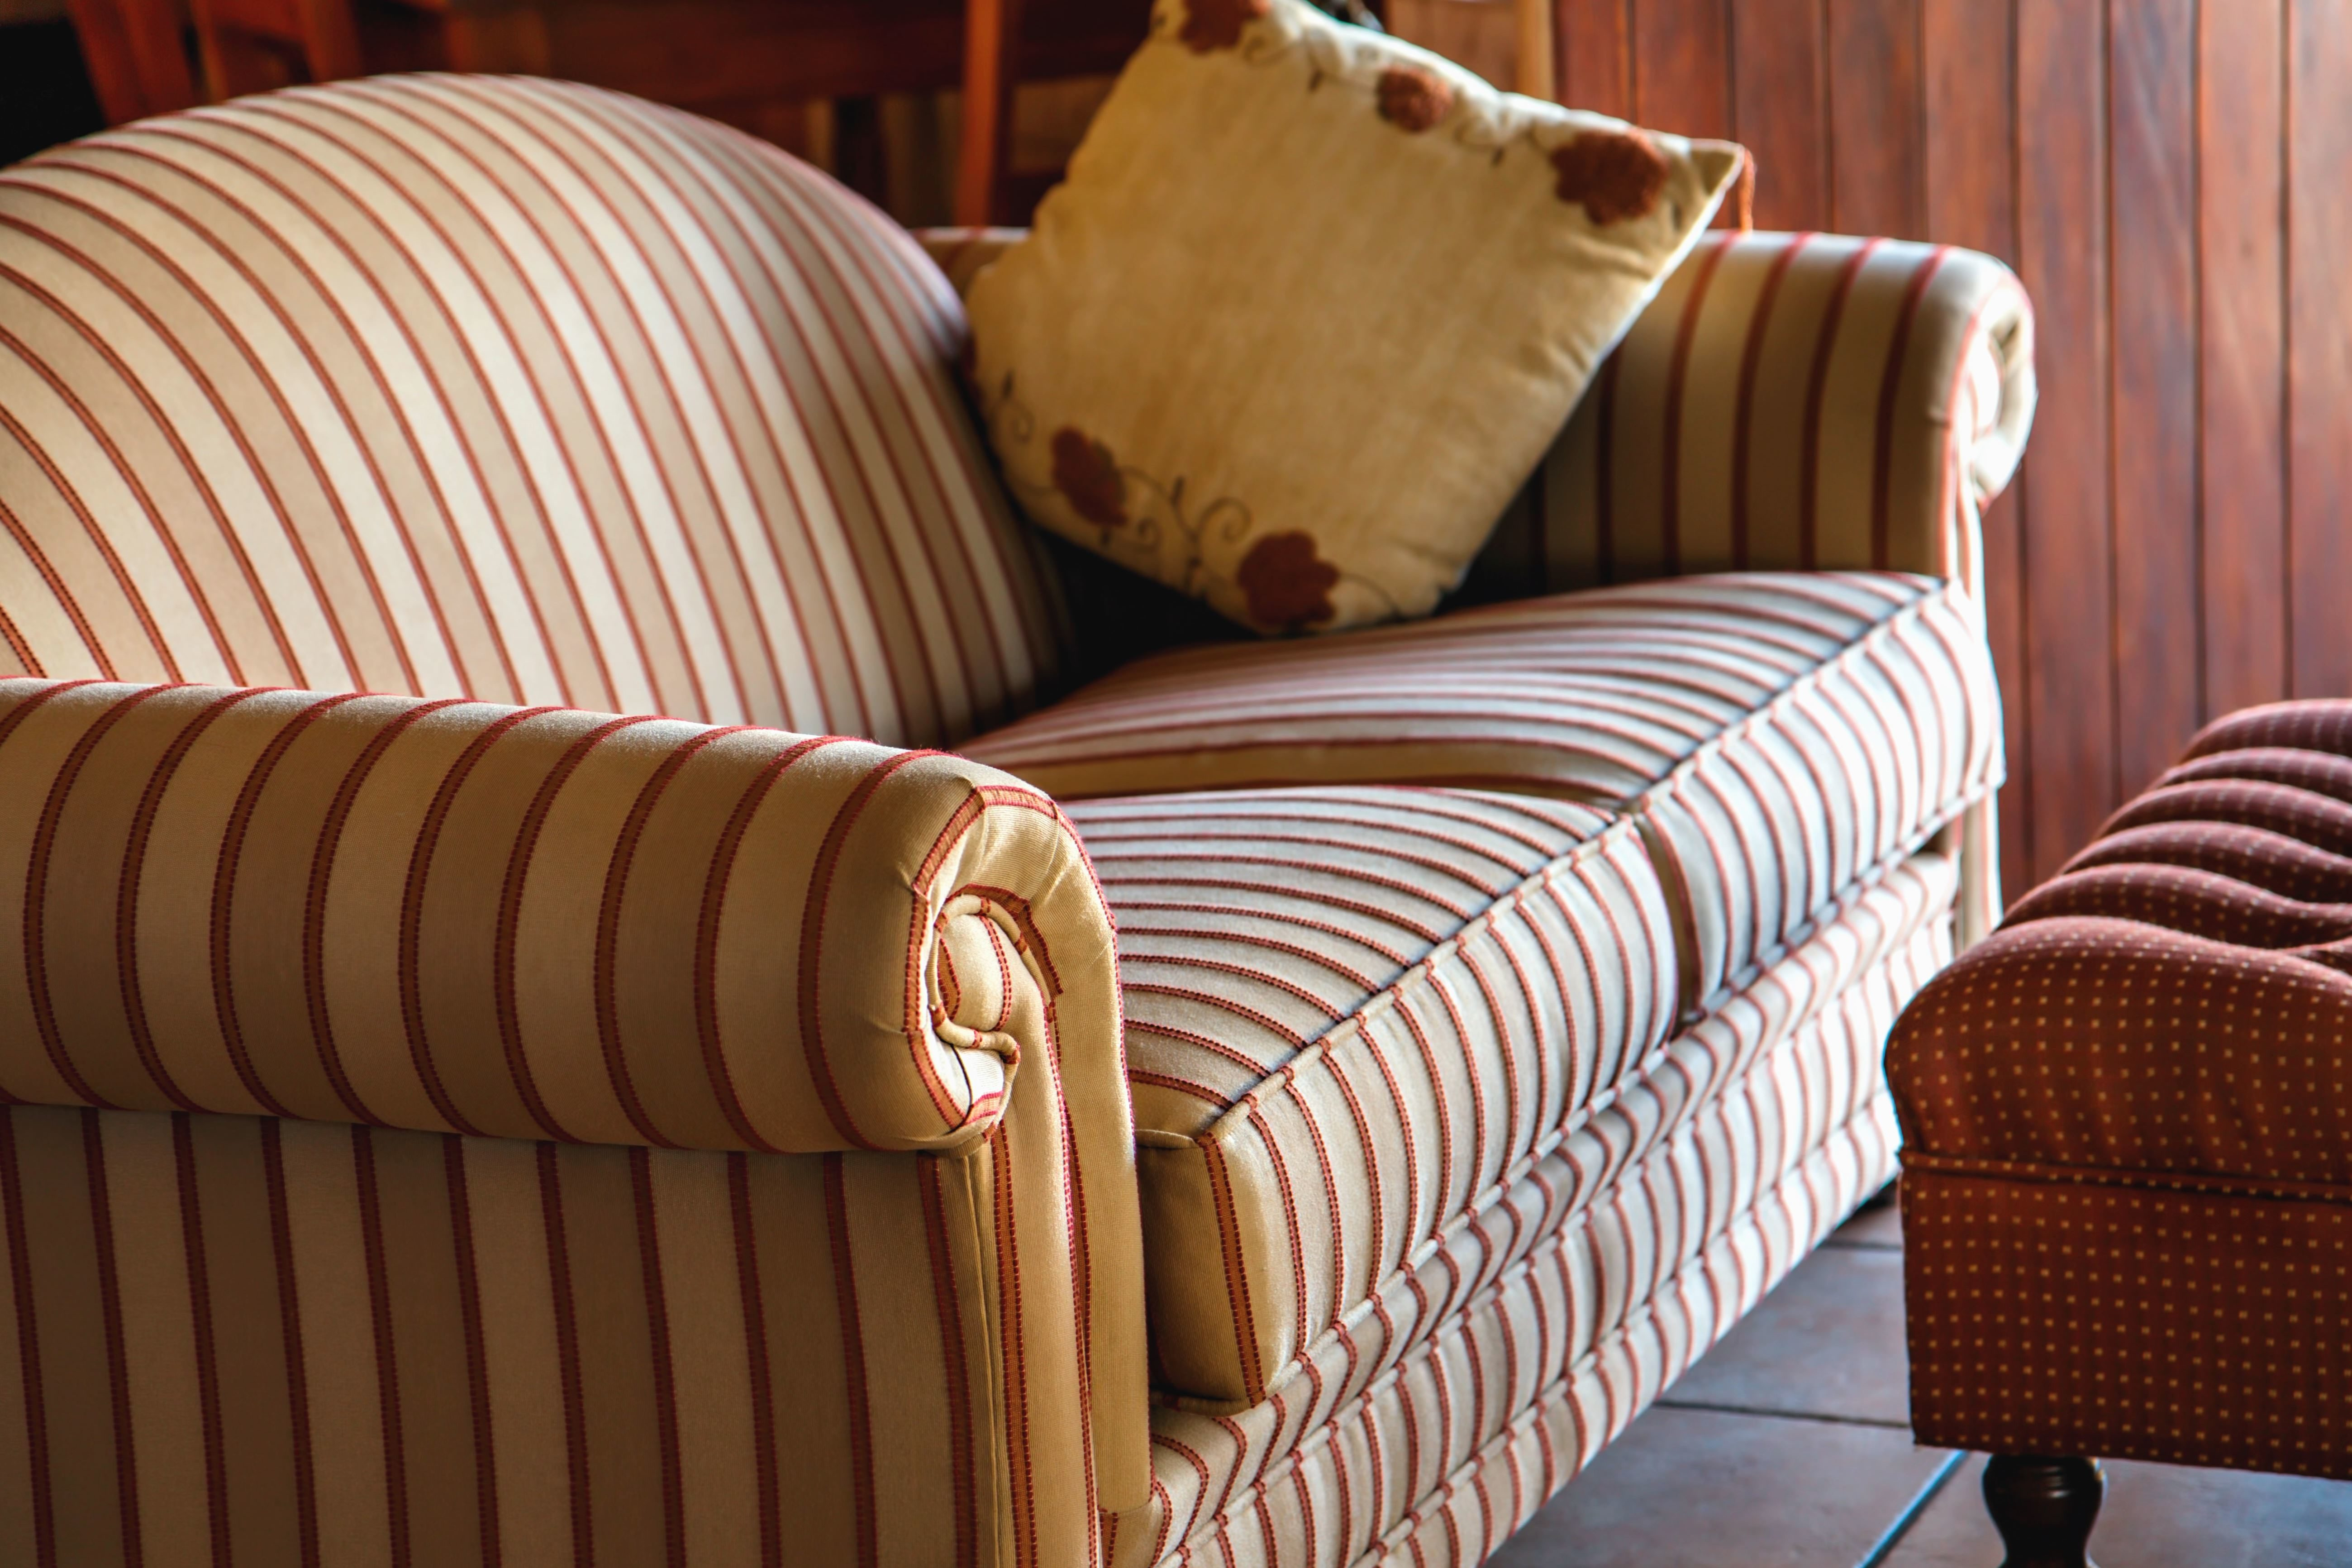 Free picture furniture armchair sofa seat interior room home couch modern comfortable